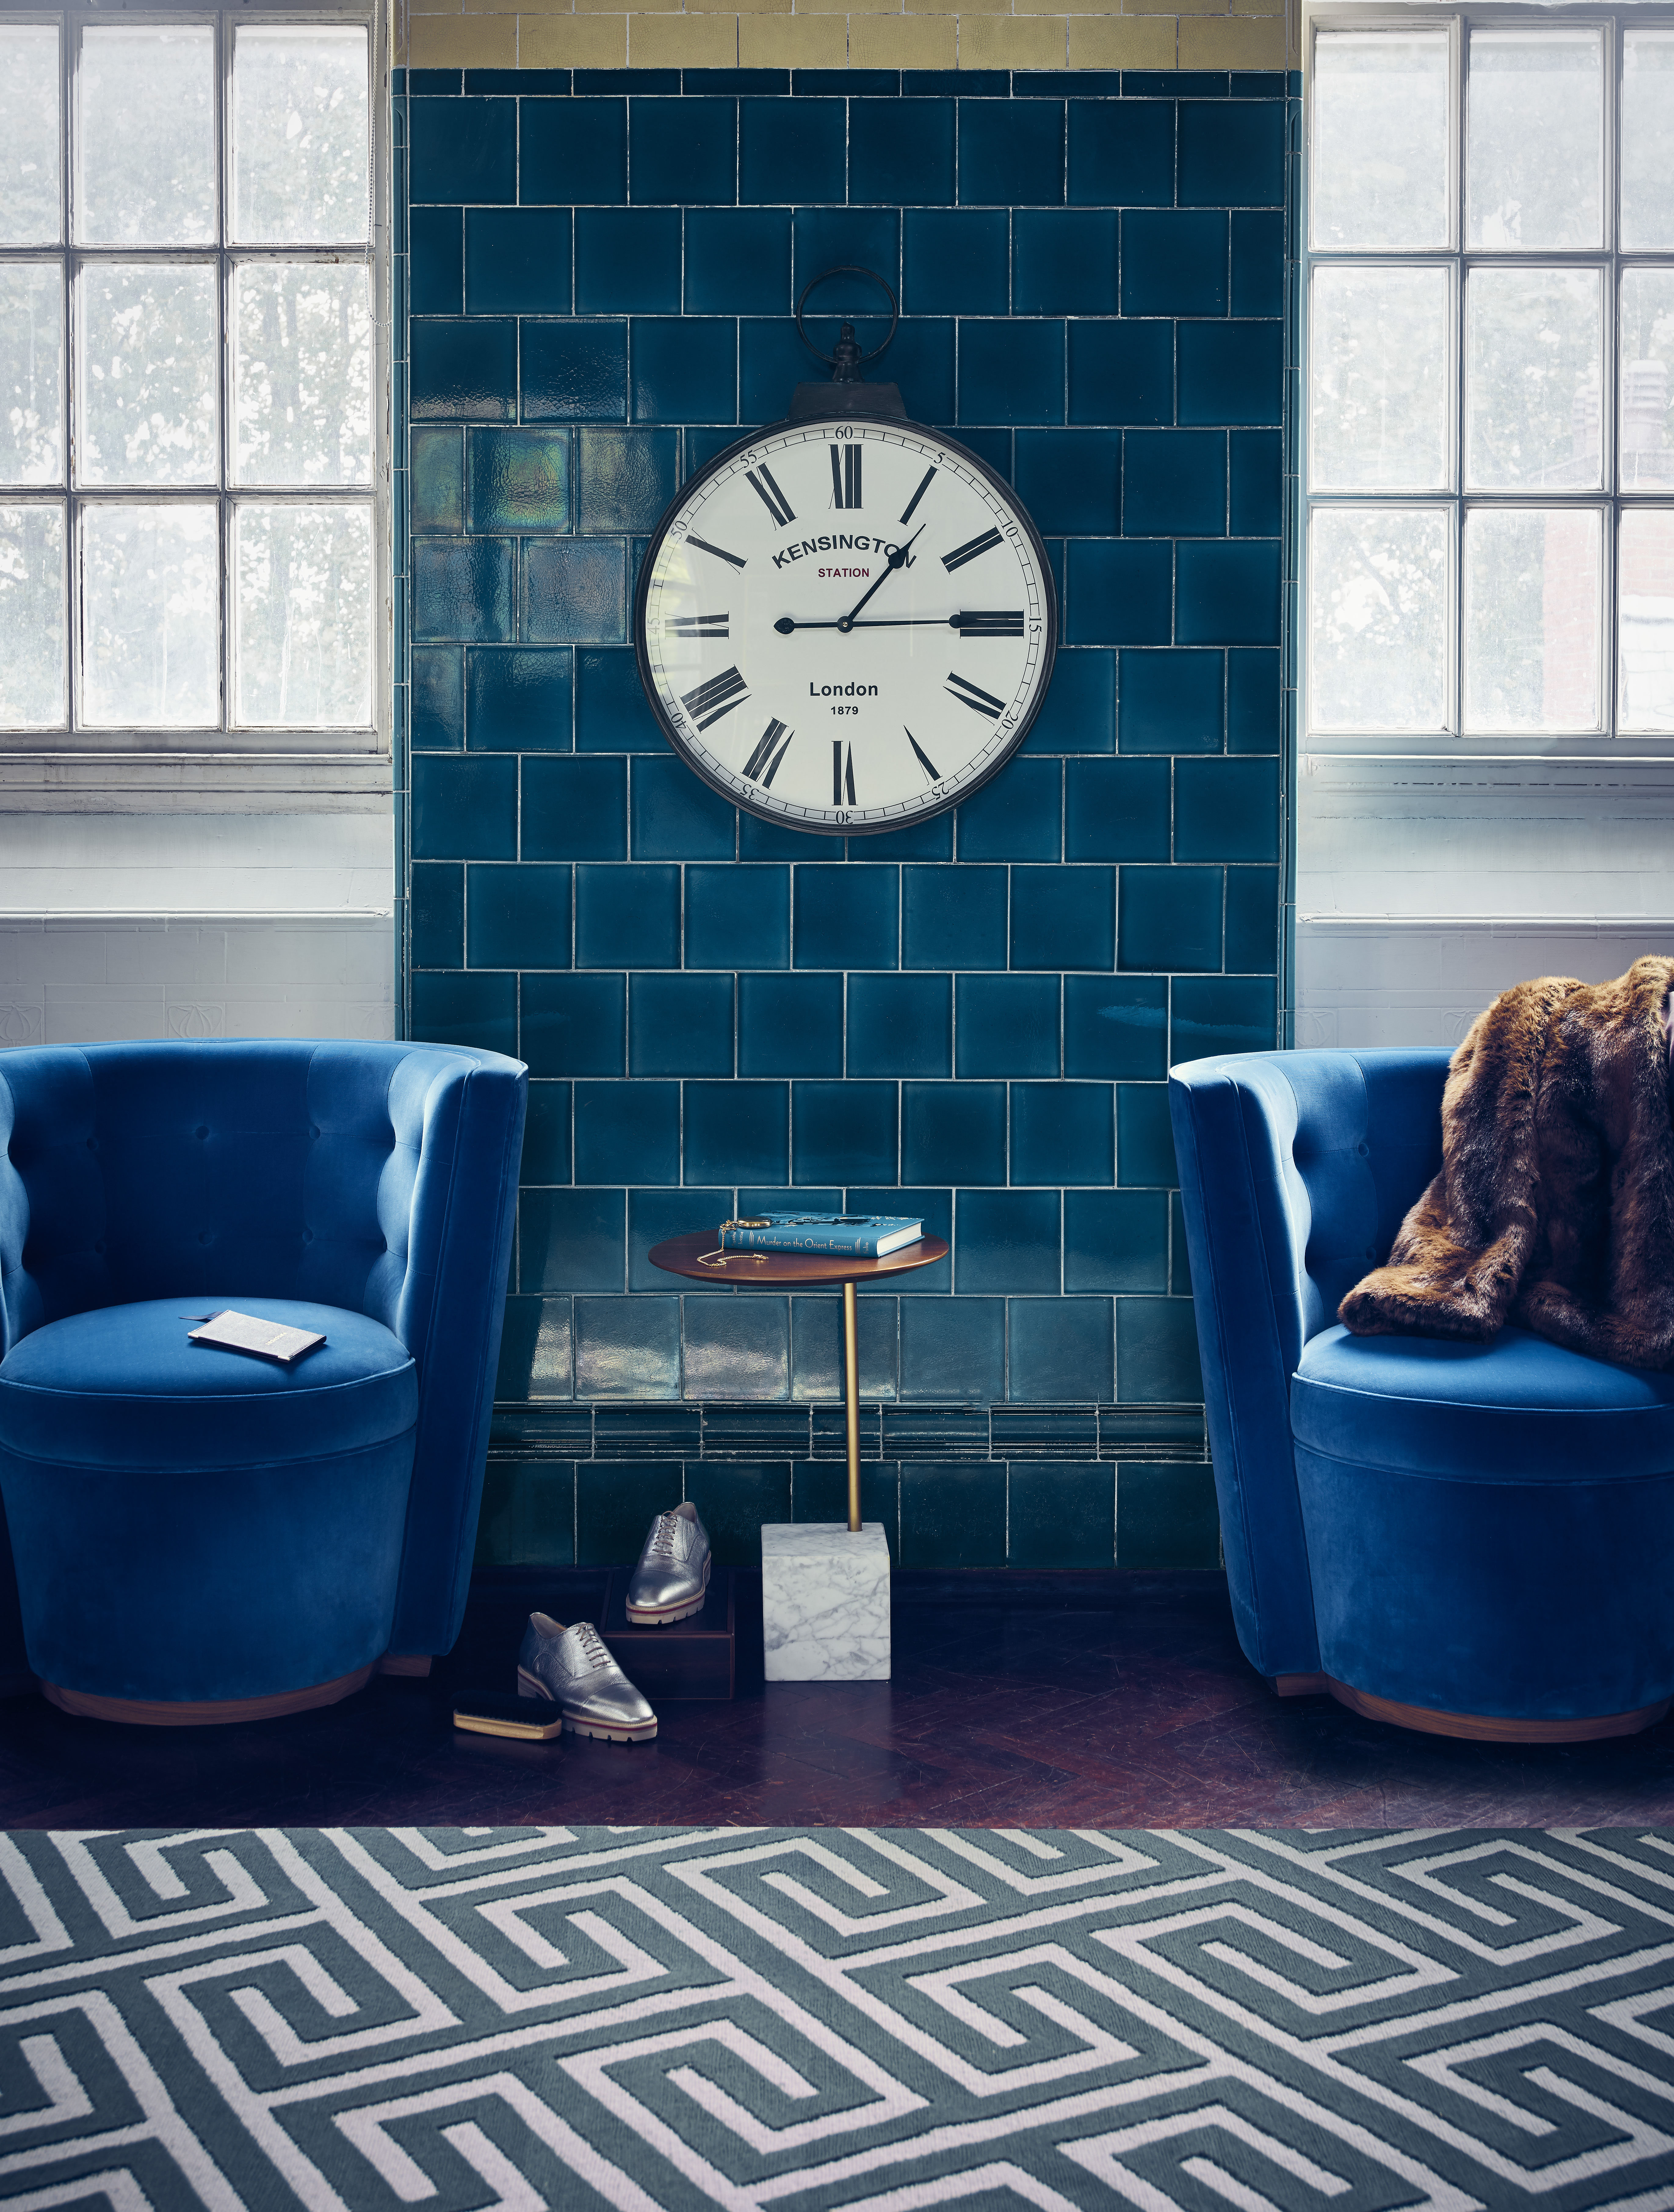 40dbfb854876 Pocket Watch wall clock, £70, The Orchard at notonthehighstreet.com. Deco  velvet tub chairs in Royal Blue, £3,500 each, Linley. Cube side table,  £199, ...